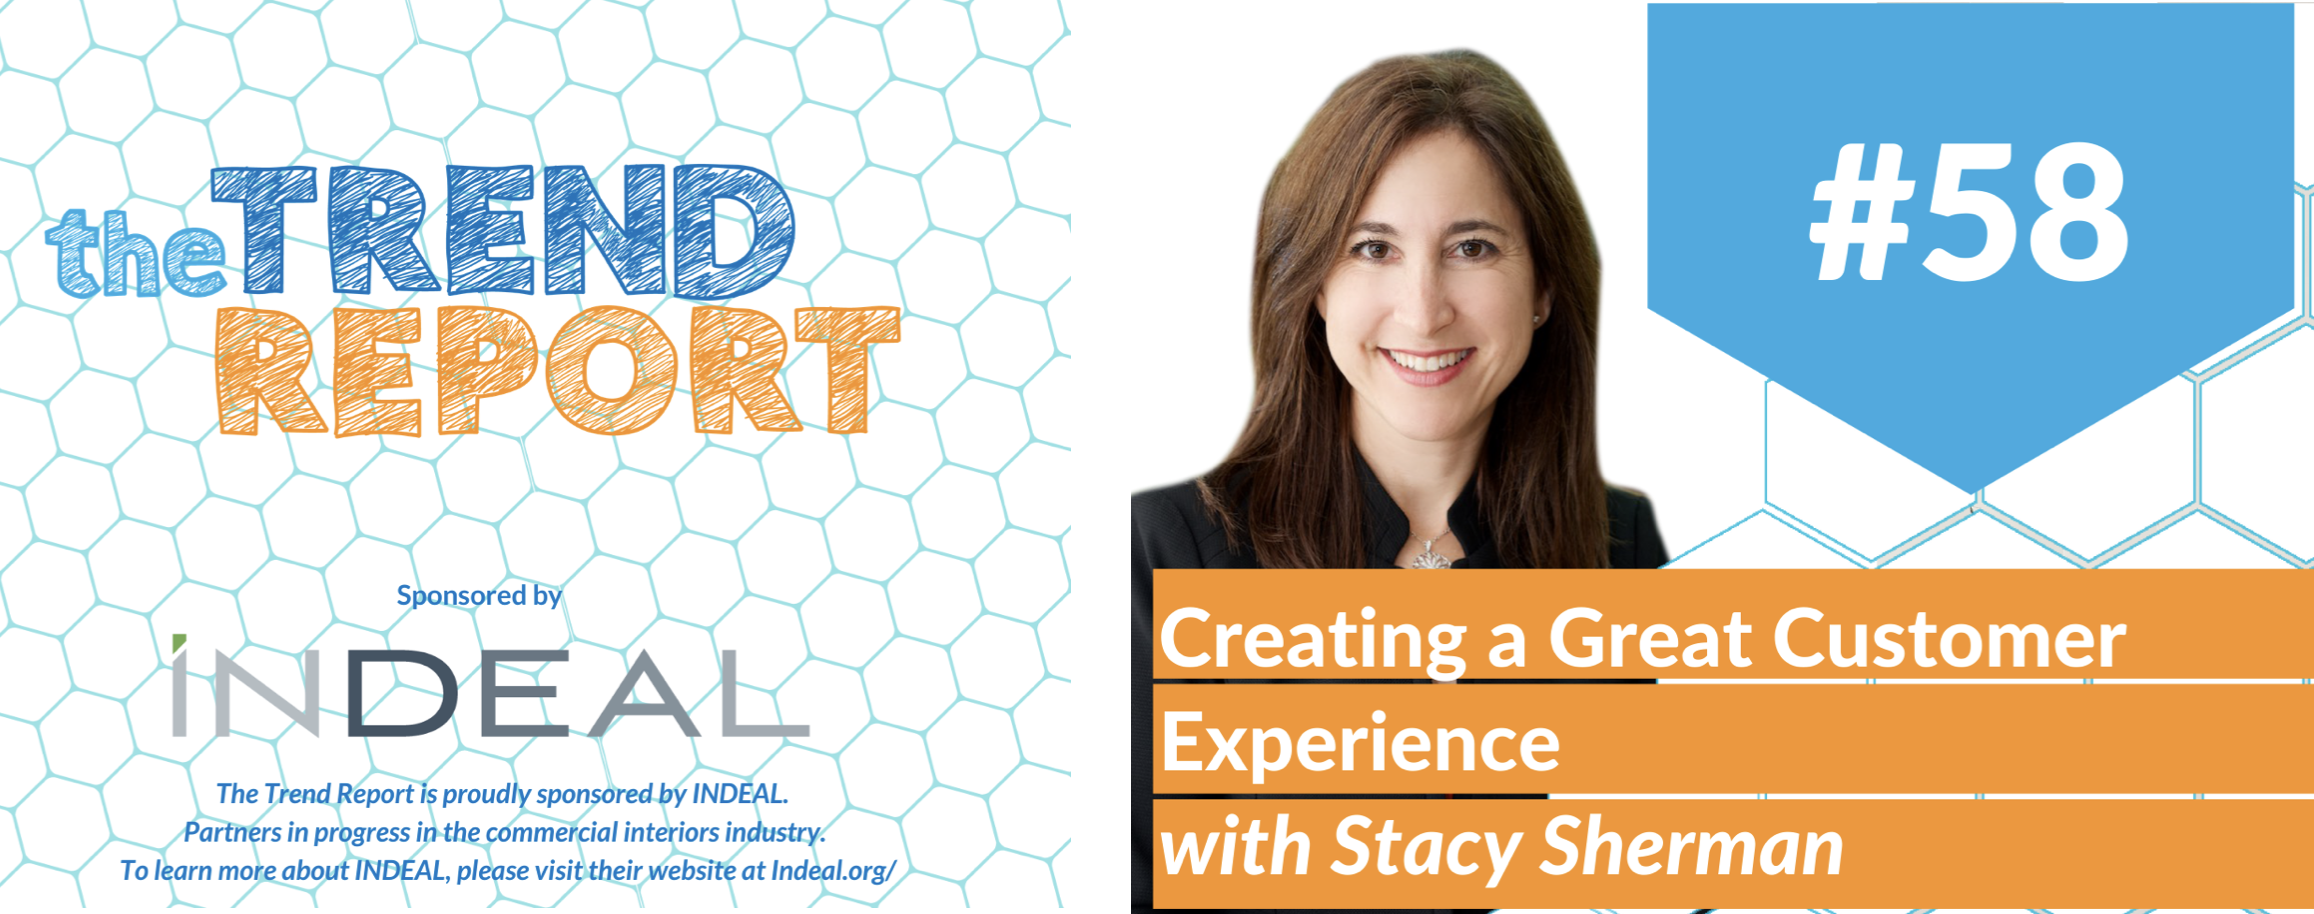 Stacy Sherman featured guest on the Trend Report about Doing Customer Experience Right